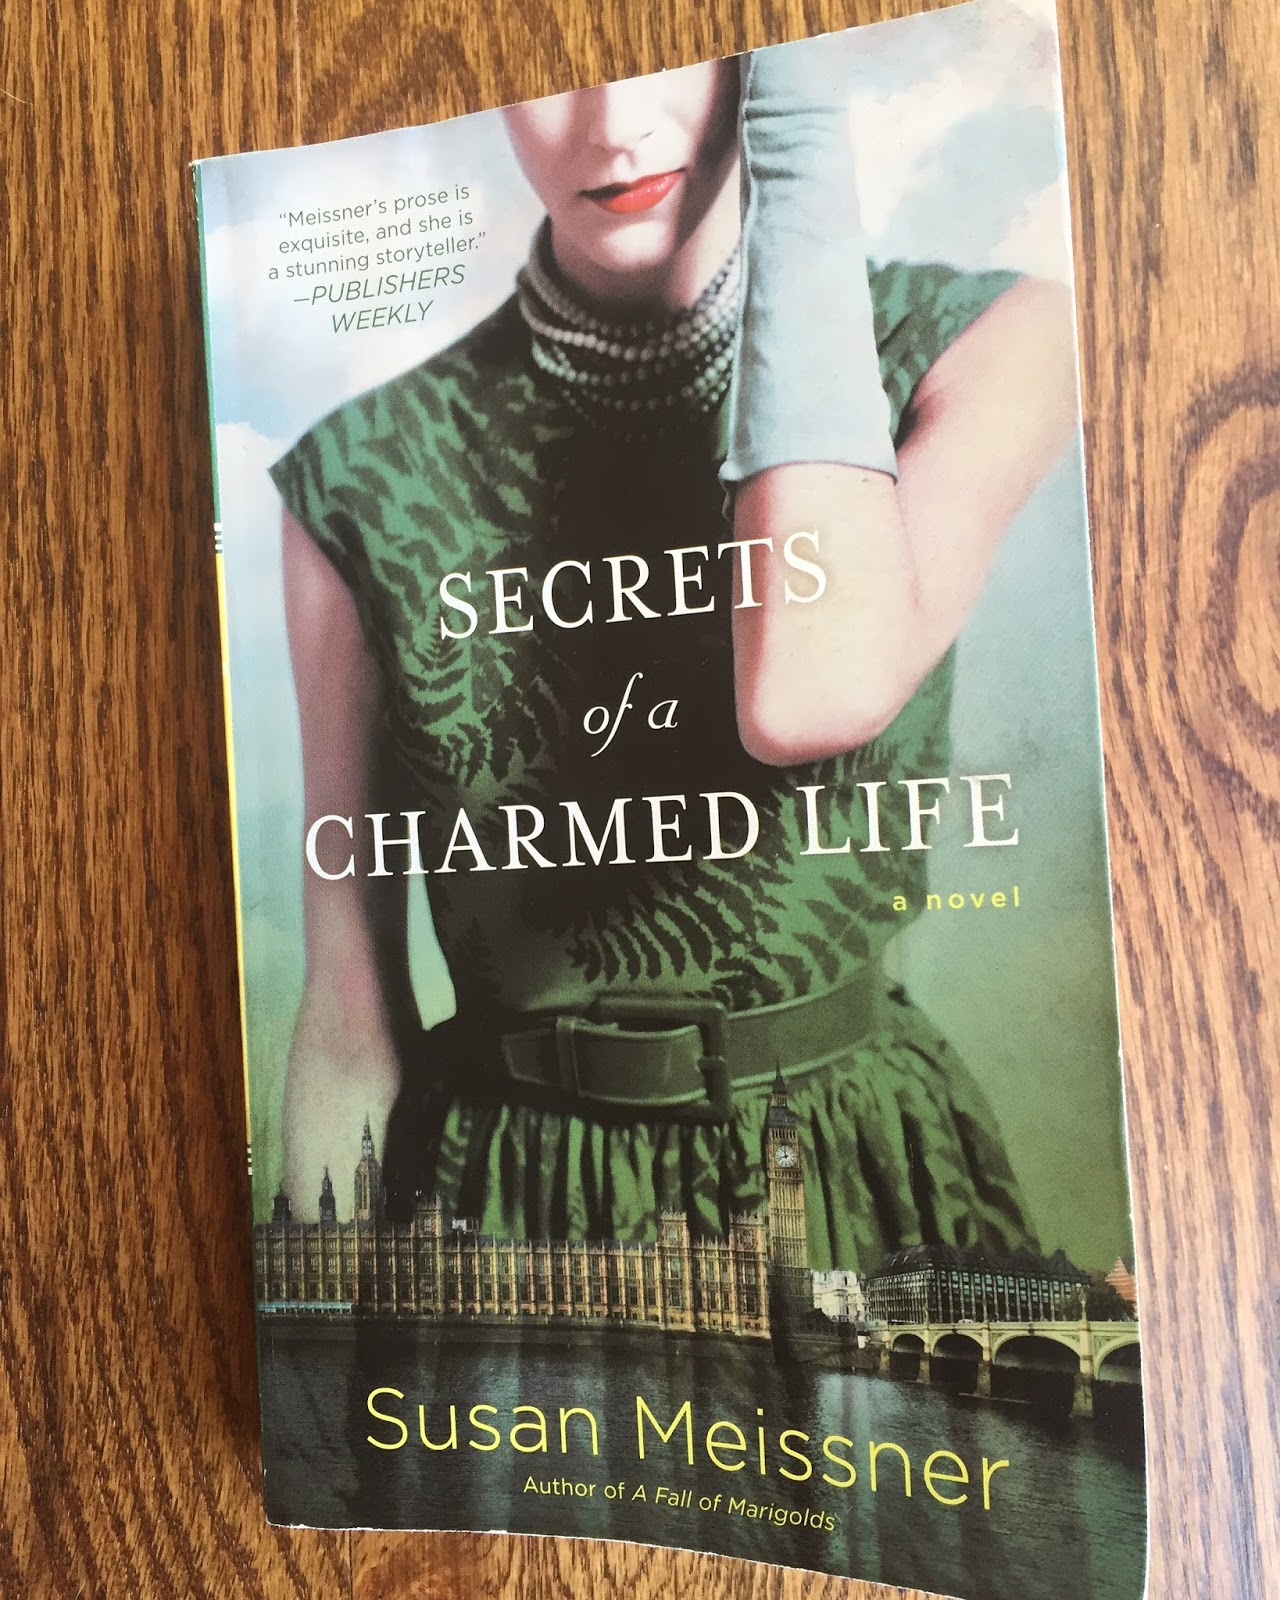 Secrets of a Charmed Life - One of my favorite books!